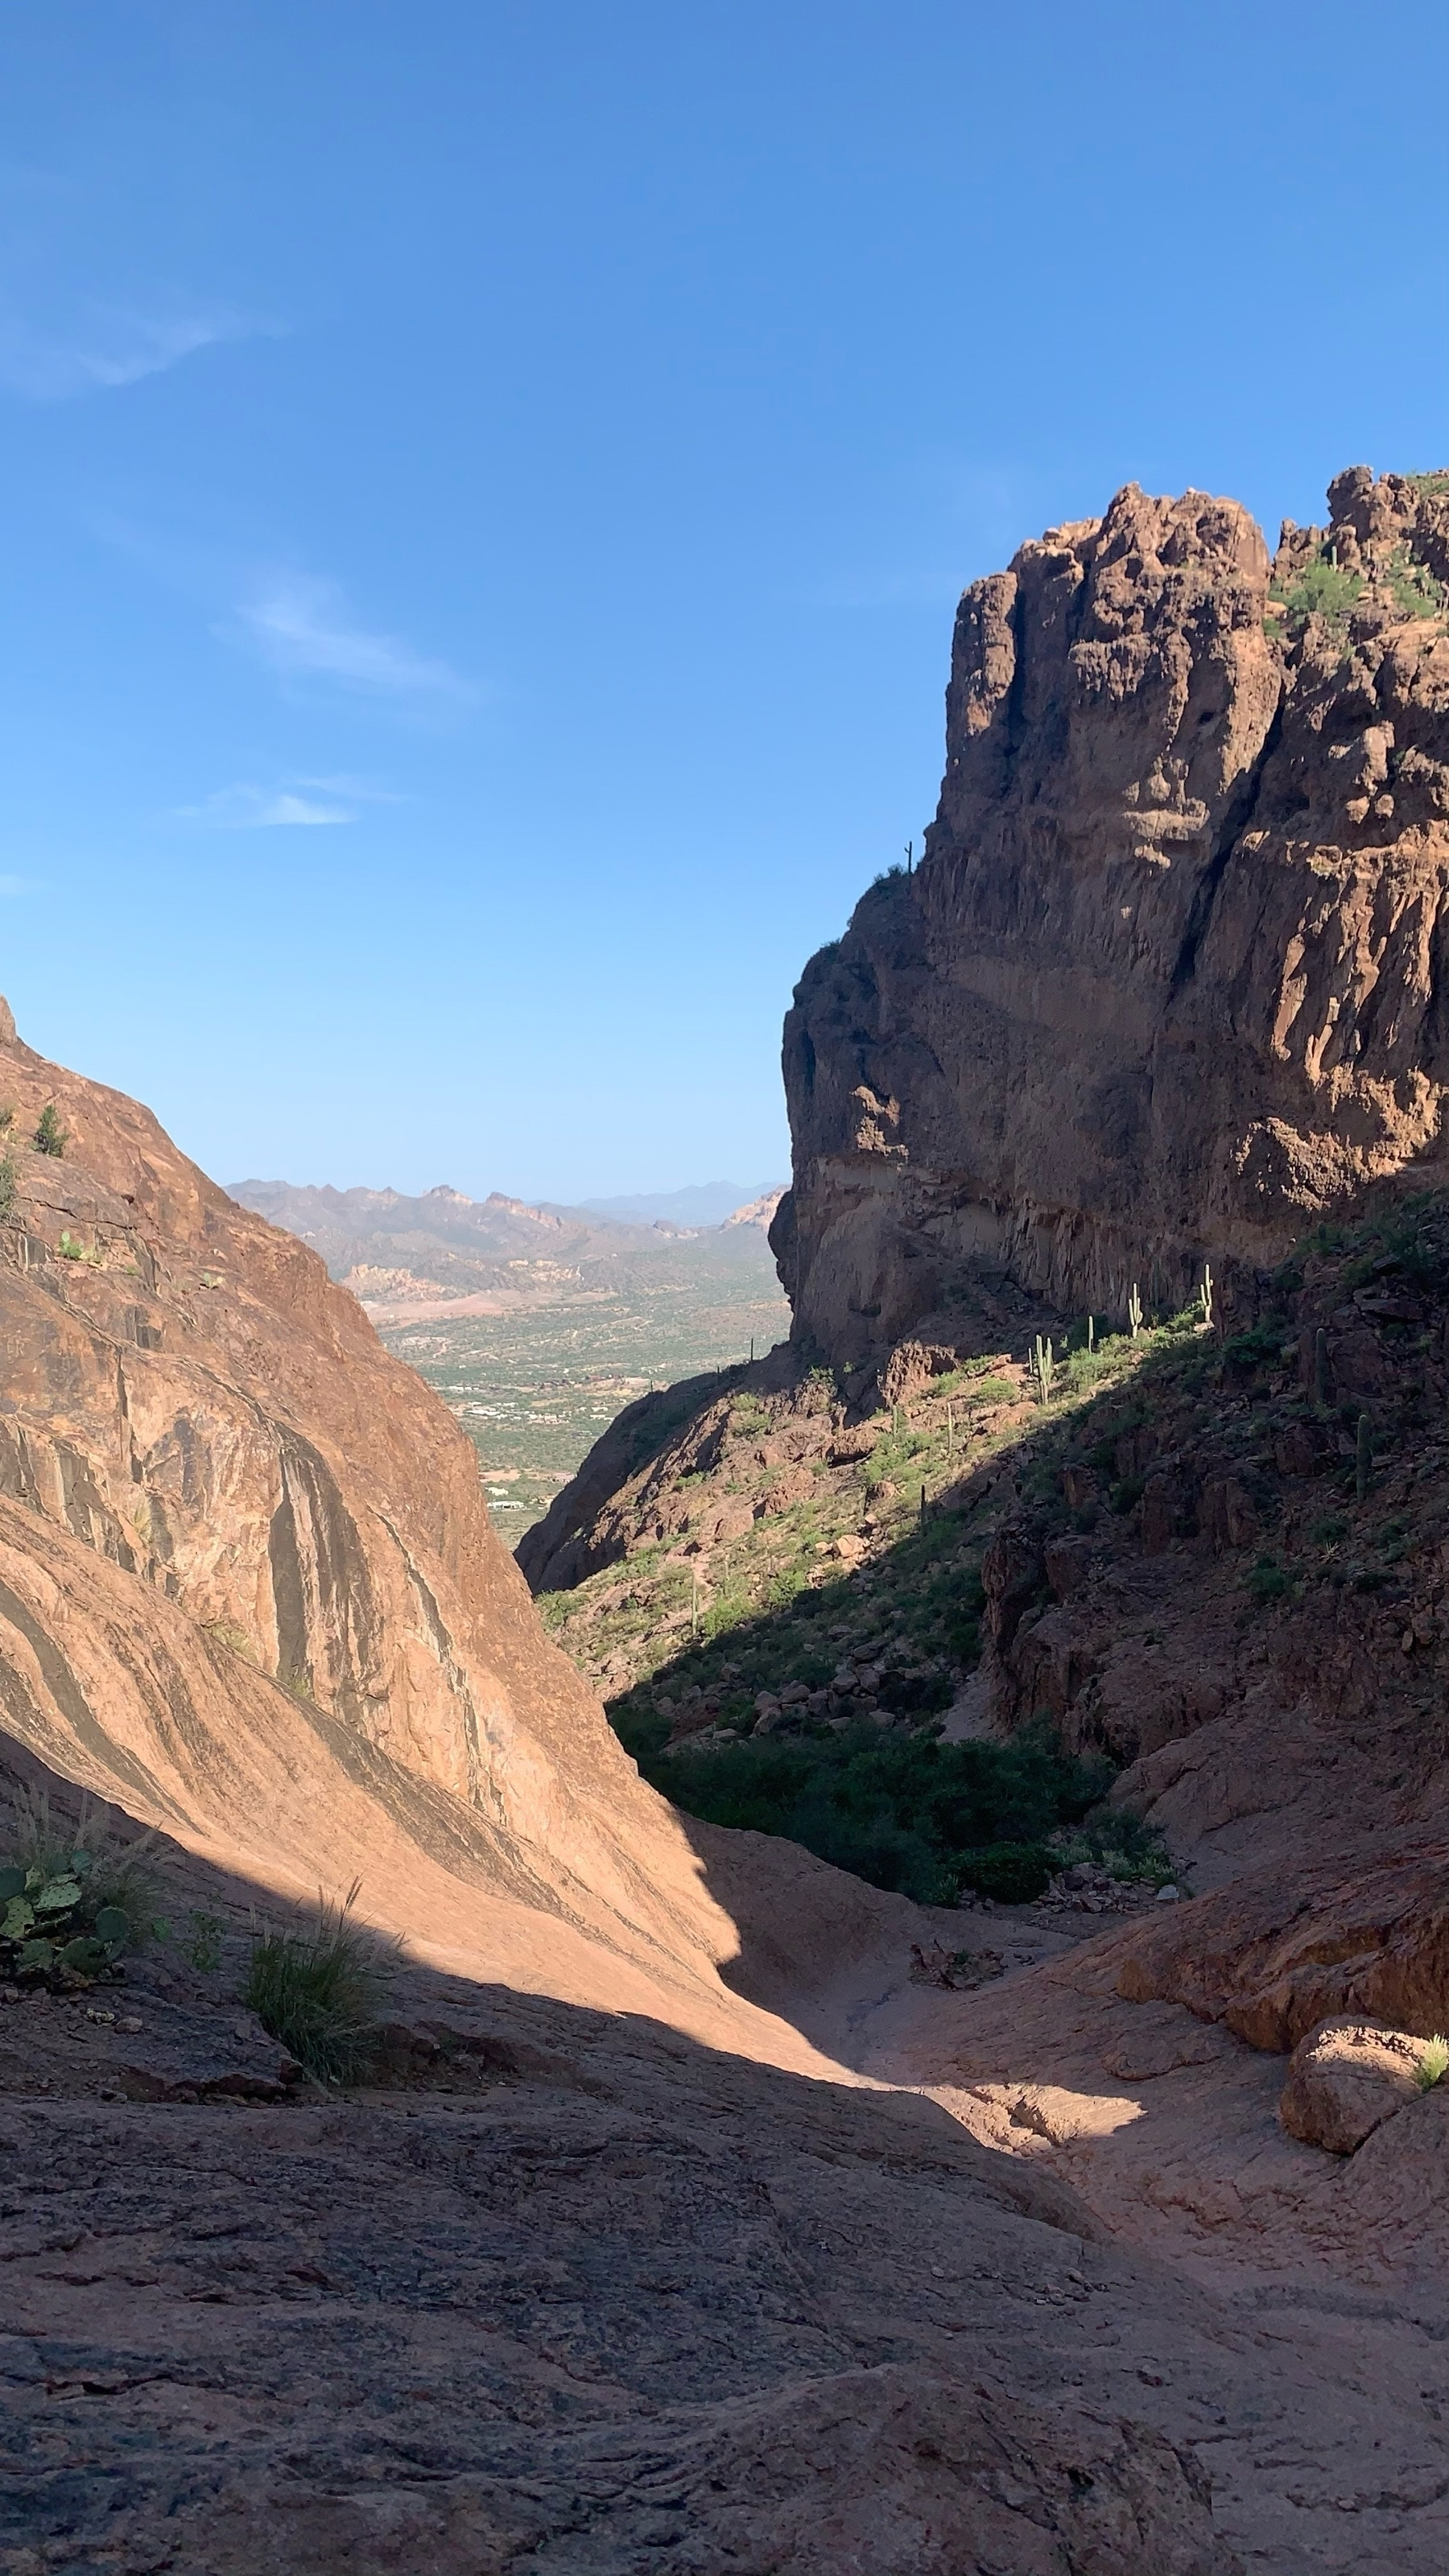 view down the gully of Siphon Draw in the Superstition Mountains